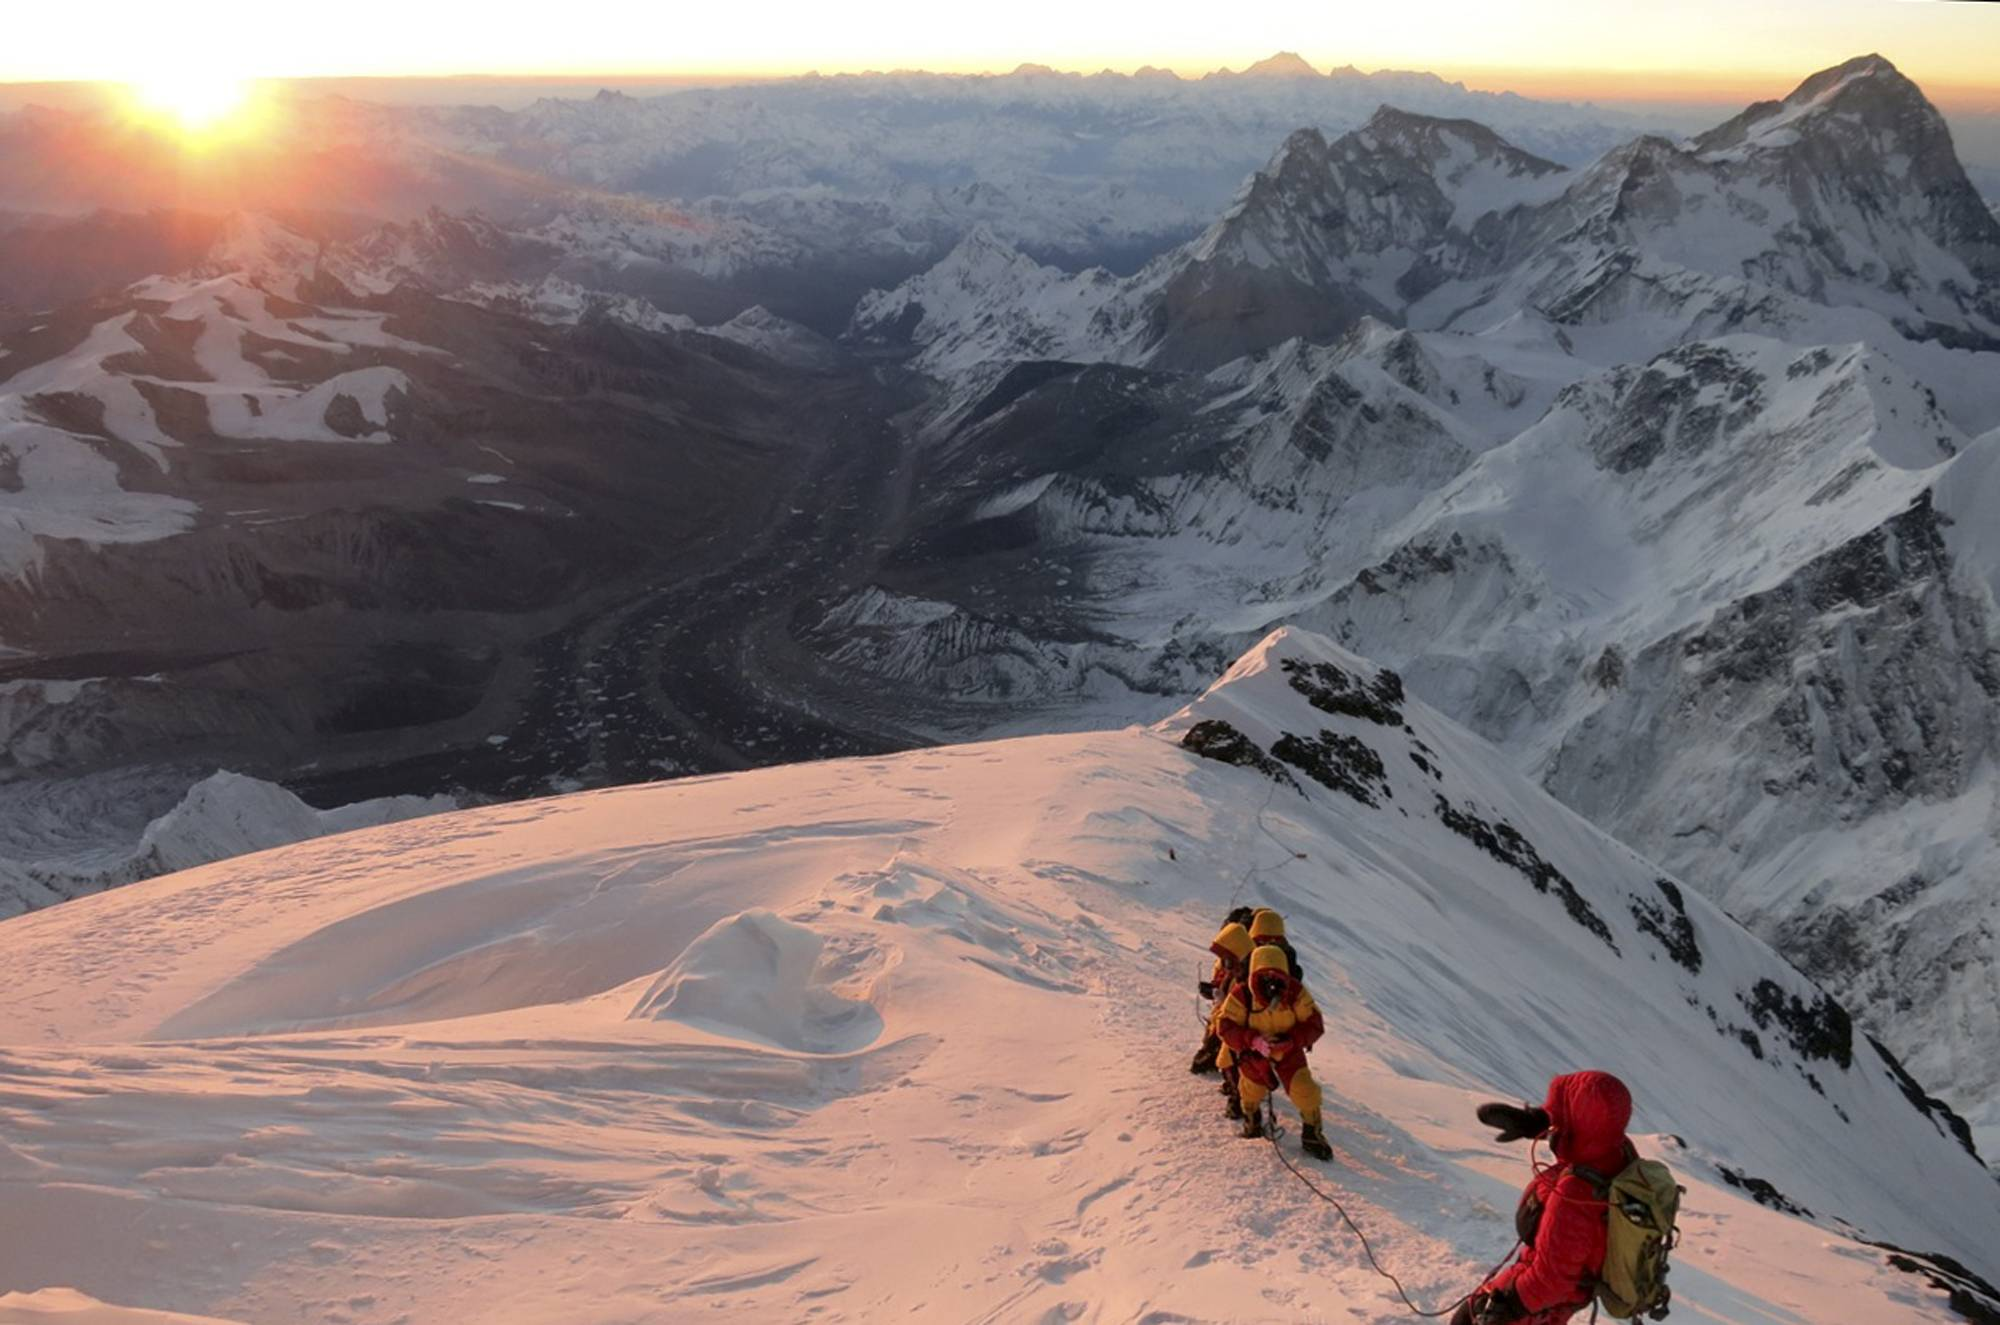 An avalanche swept down a climbing route on Mount Everest early Friday killing at least 12 Nepalese guides and leaving three missing in the deadliest disaster on the world's highest peak.